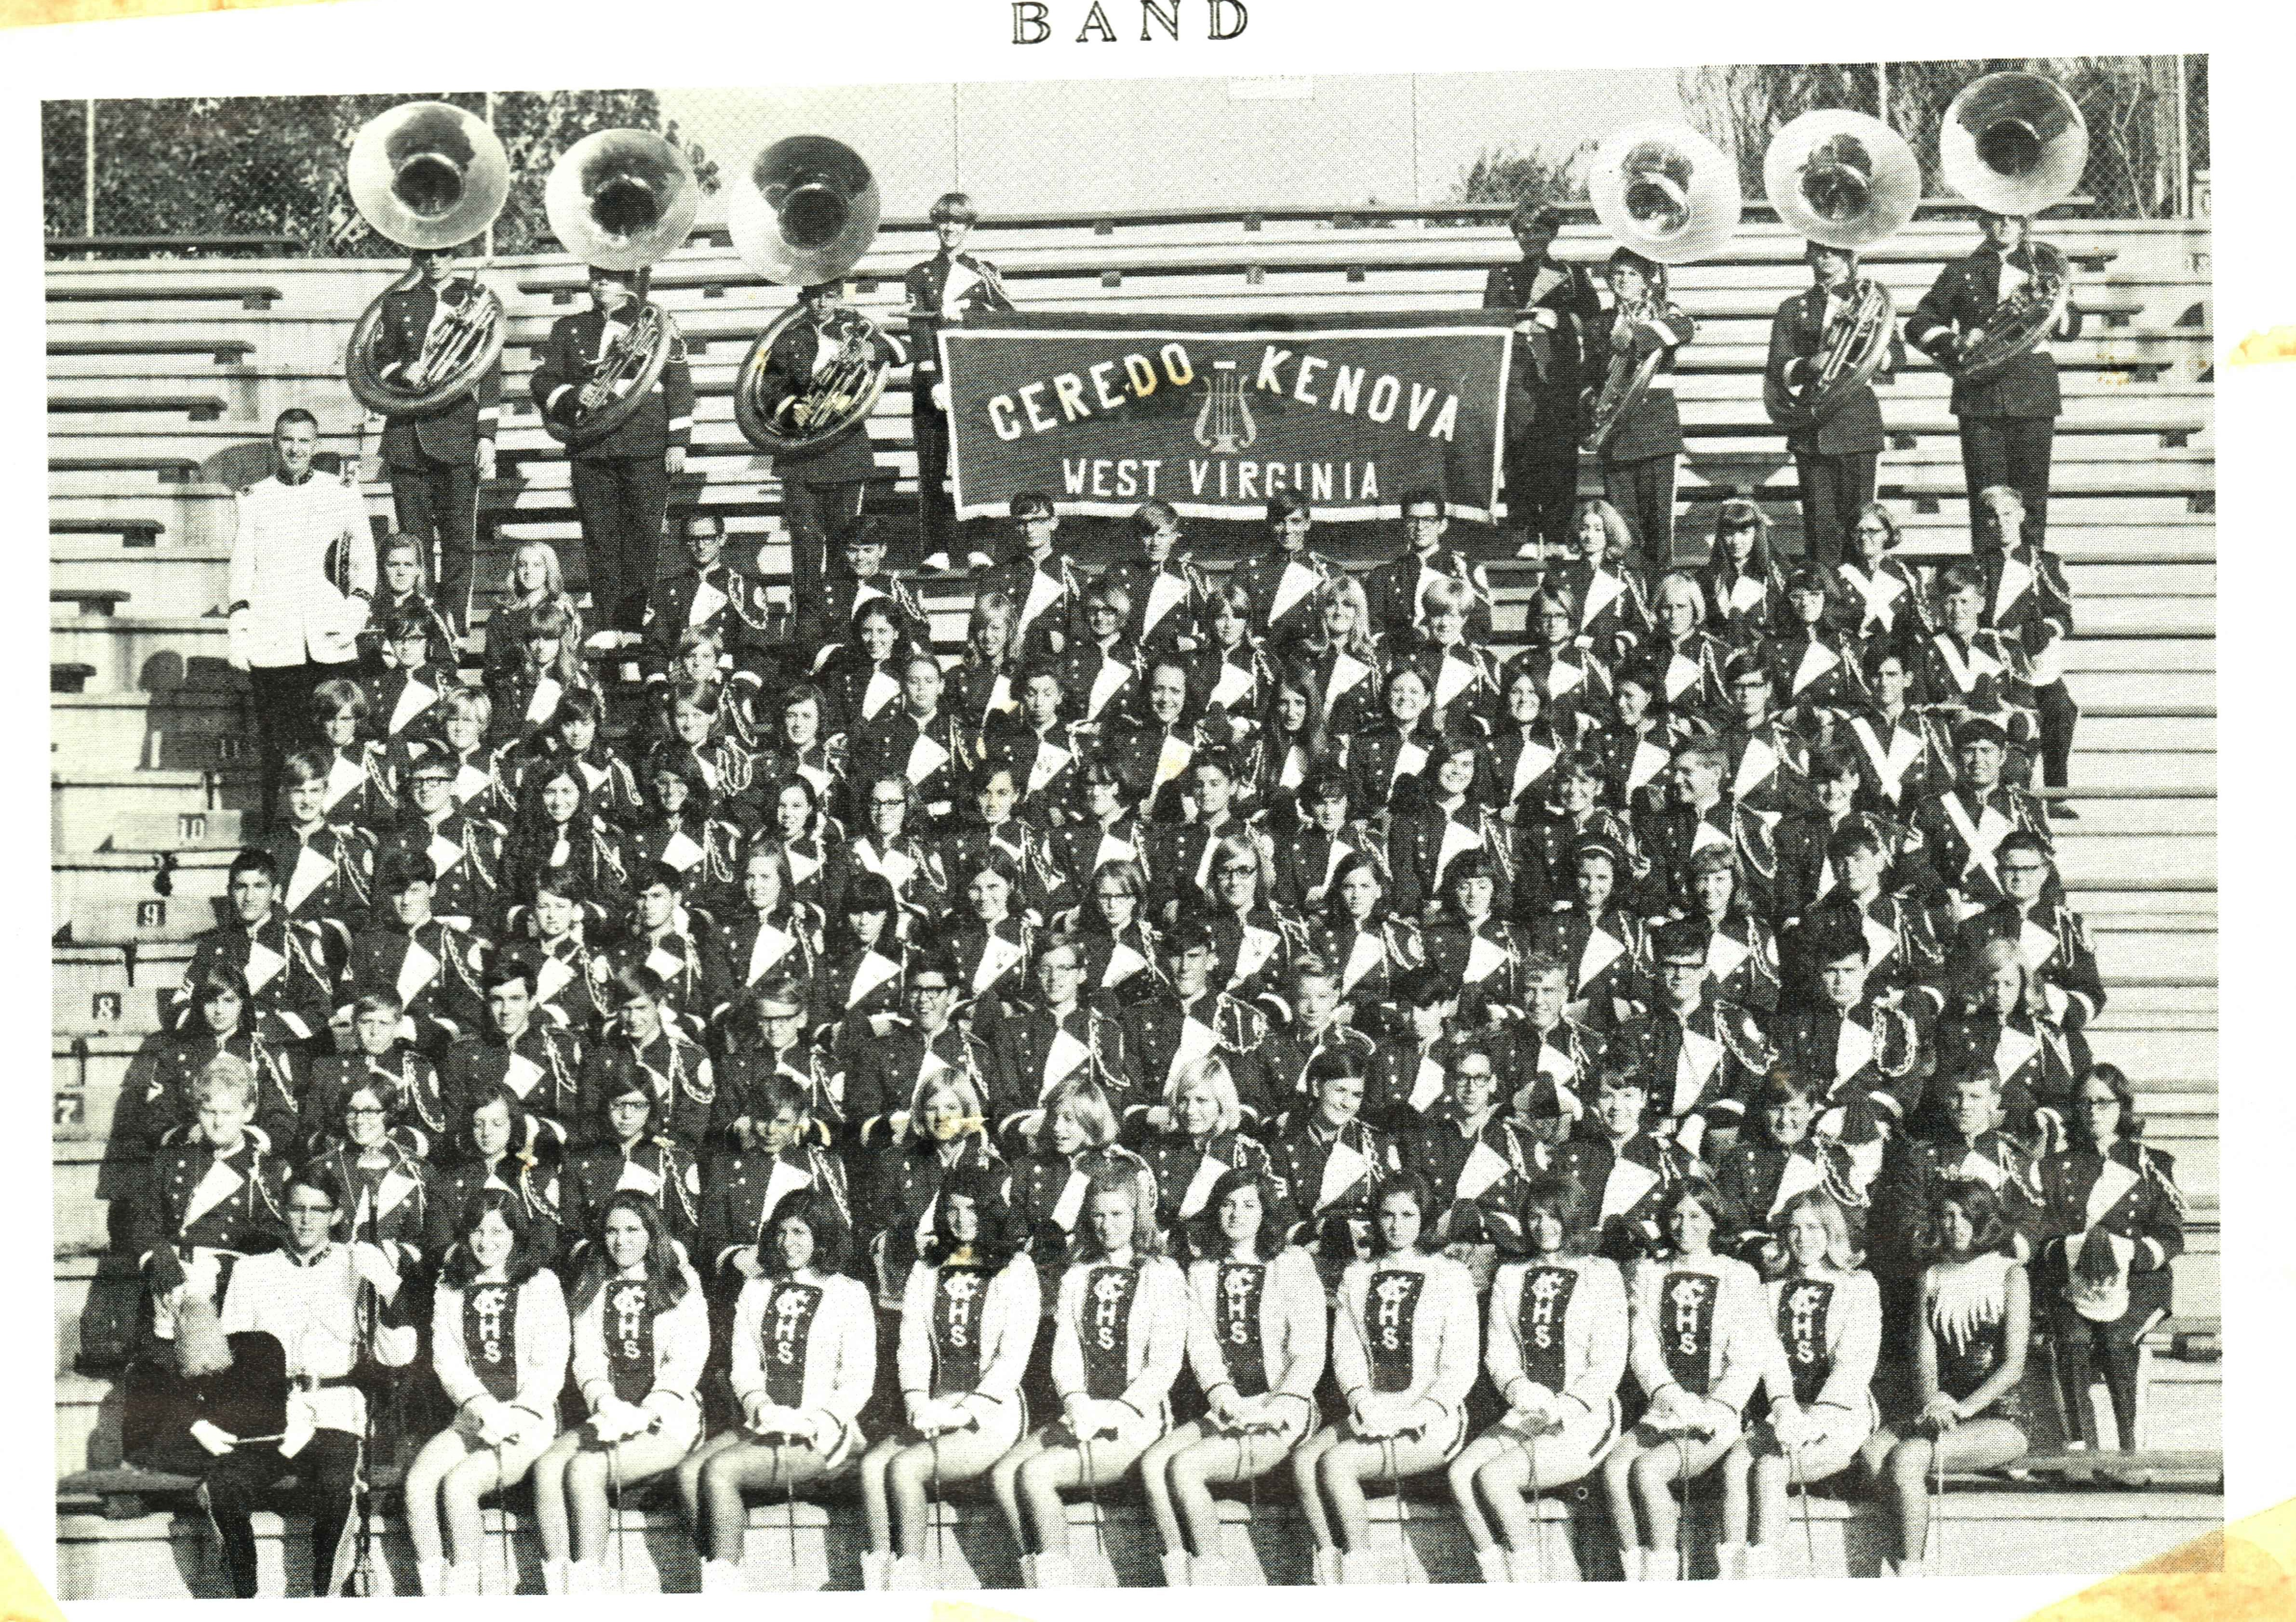 The C-K High marching band. Courtesy of the Ceredo Historical Society Museum.